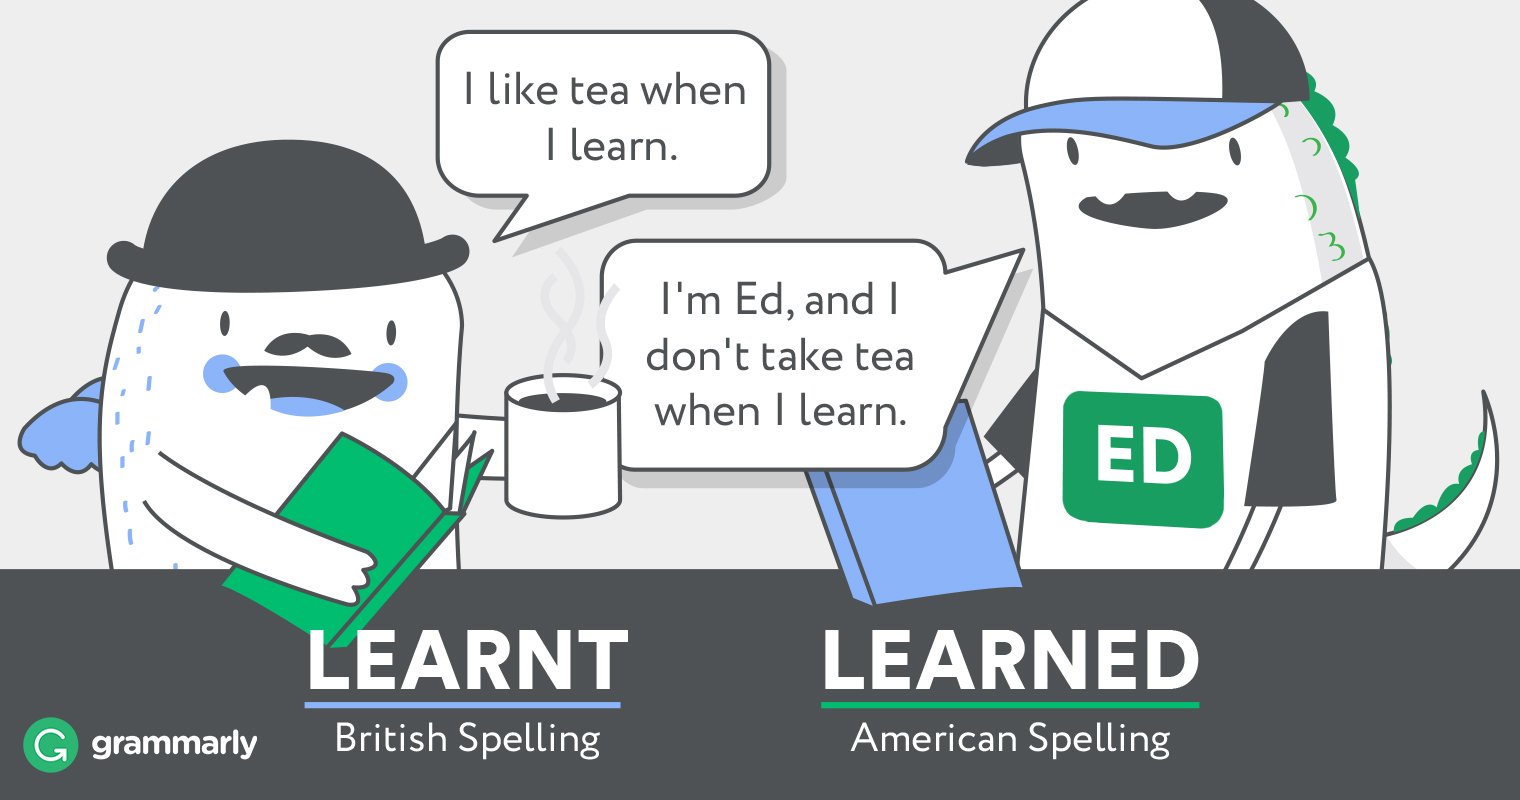 Learned or Learnt? Image